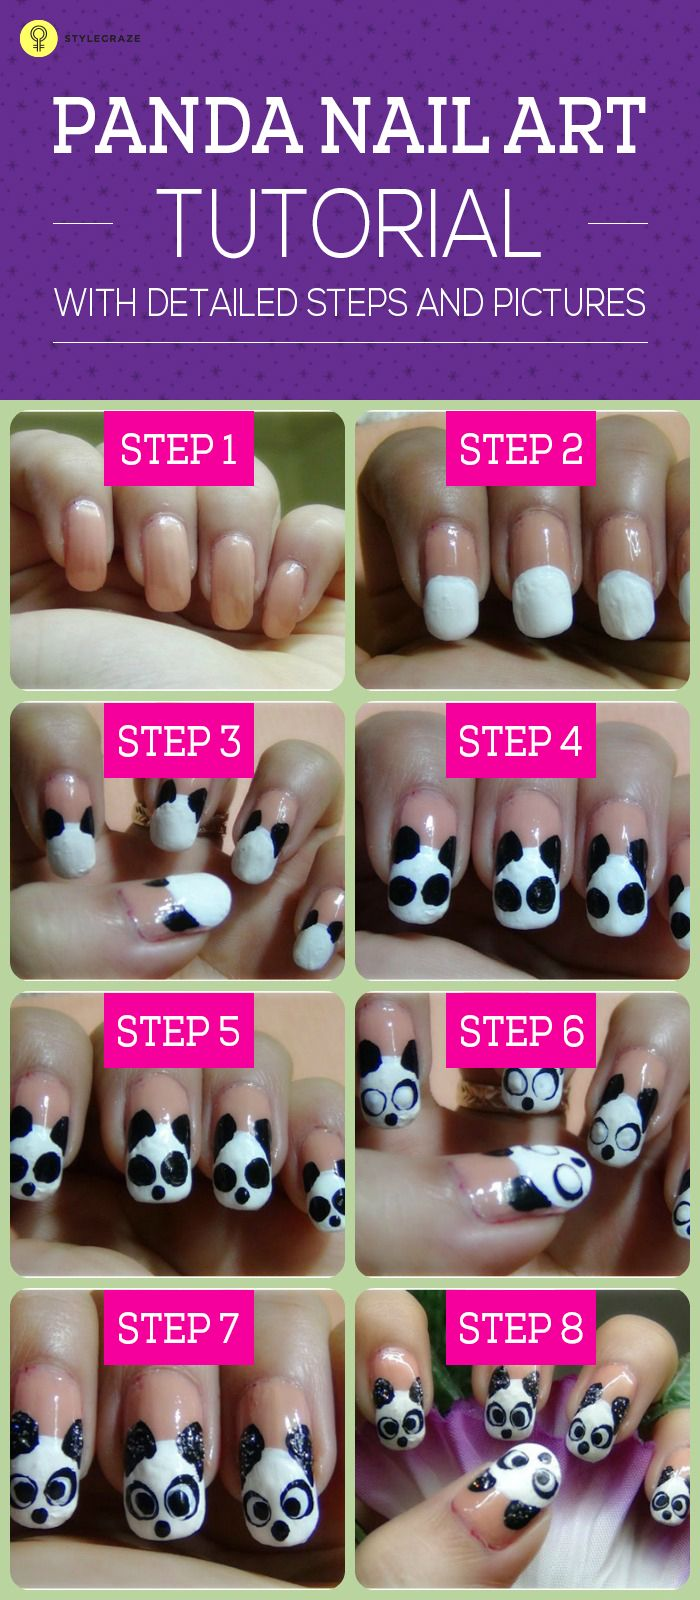 Cute nail designs are always loved and adored. Today we will show you a cute panda nail art tutorial which is actually very easy to create. Click to know more.